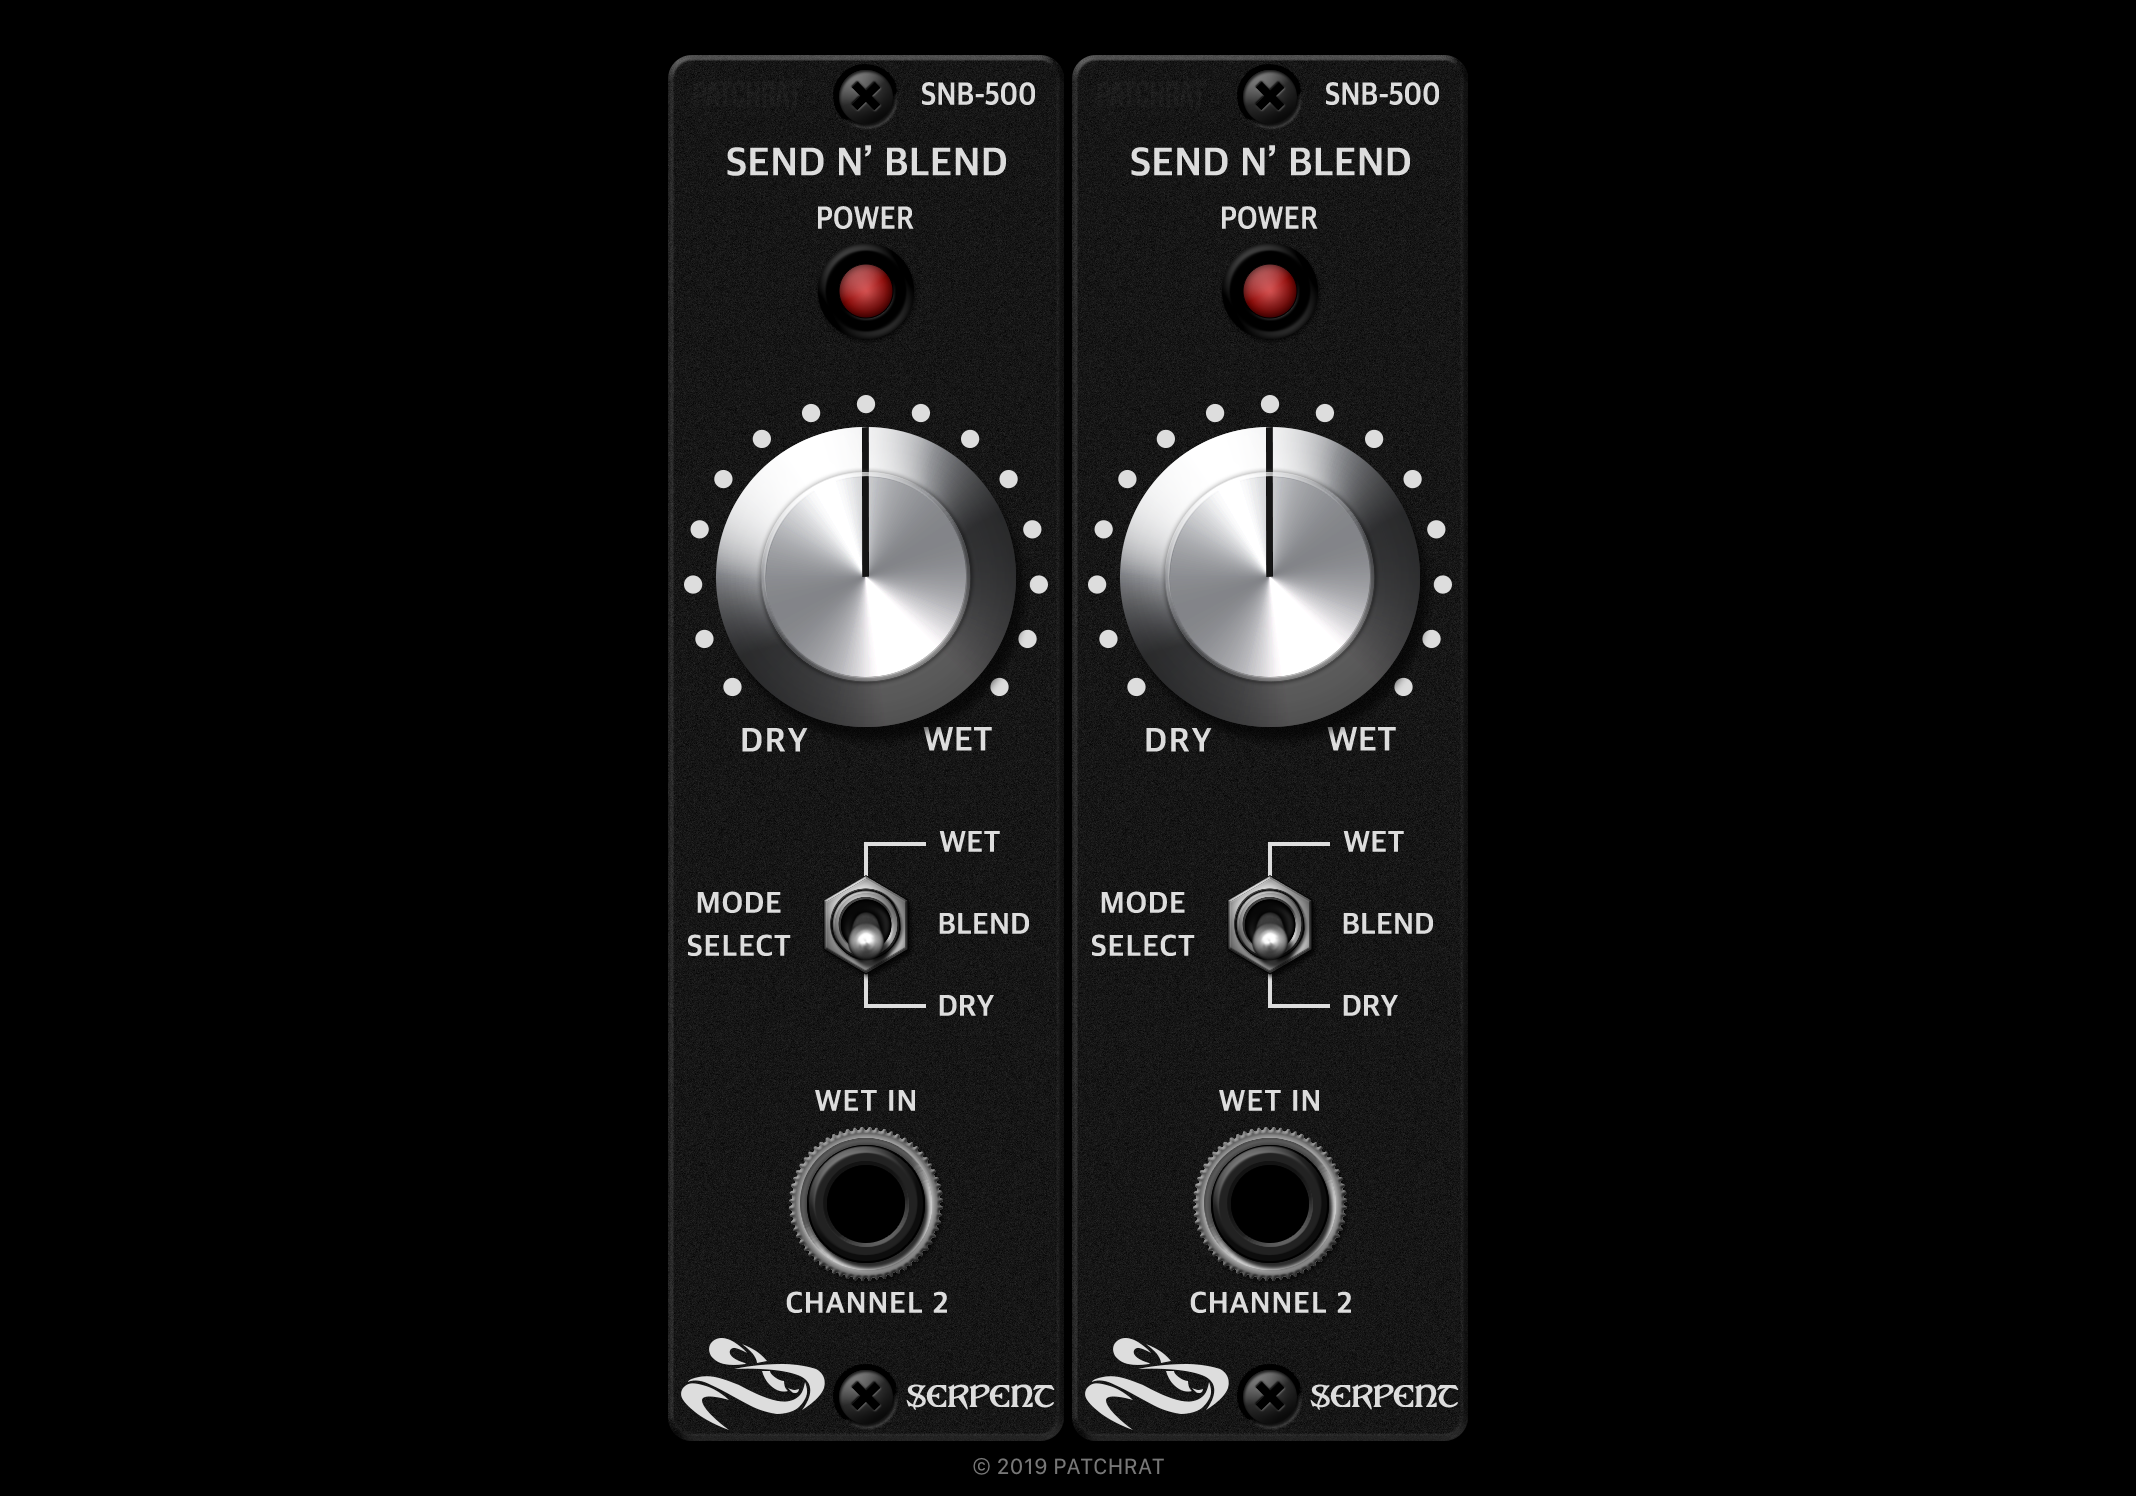 Serpent Send N' Blend SNB-500 recall modules for the Patchrat app